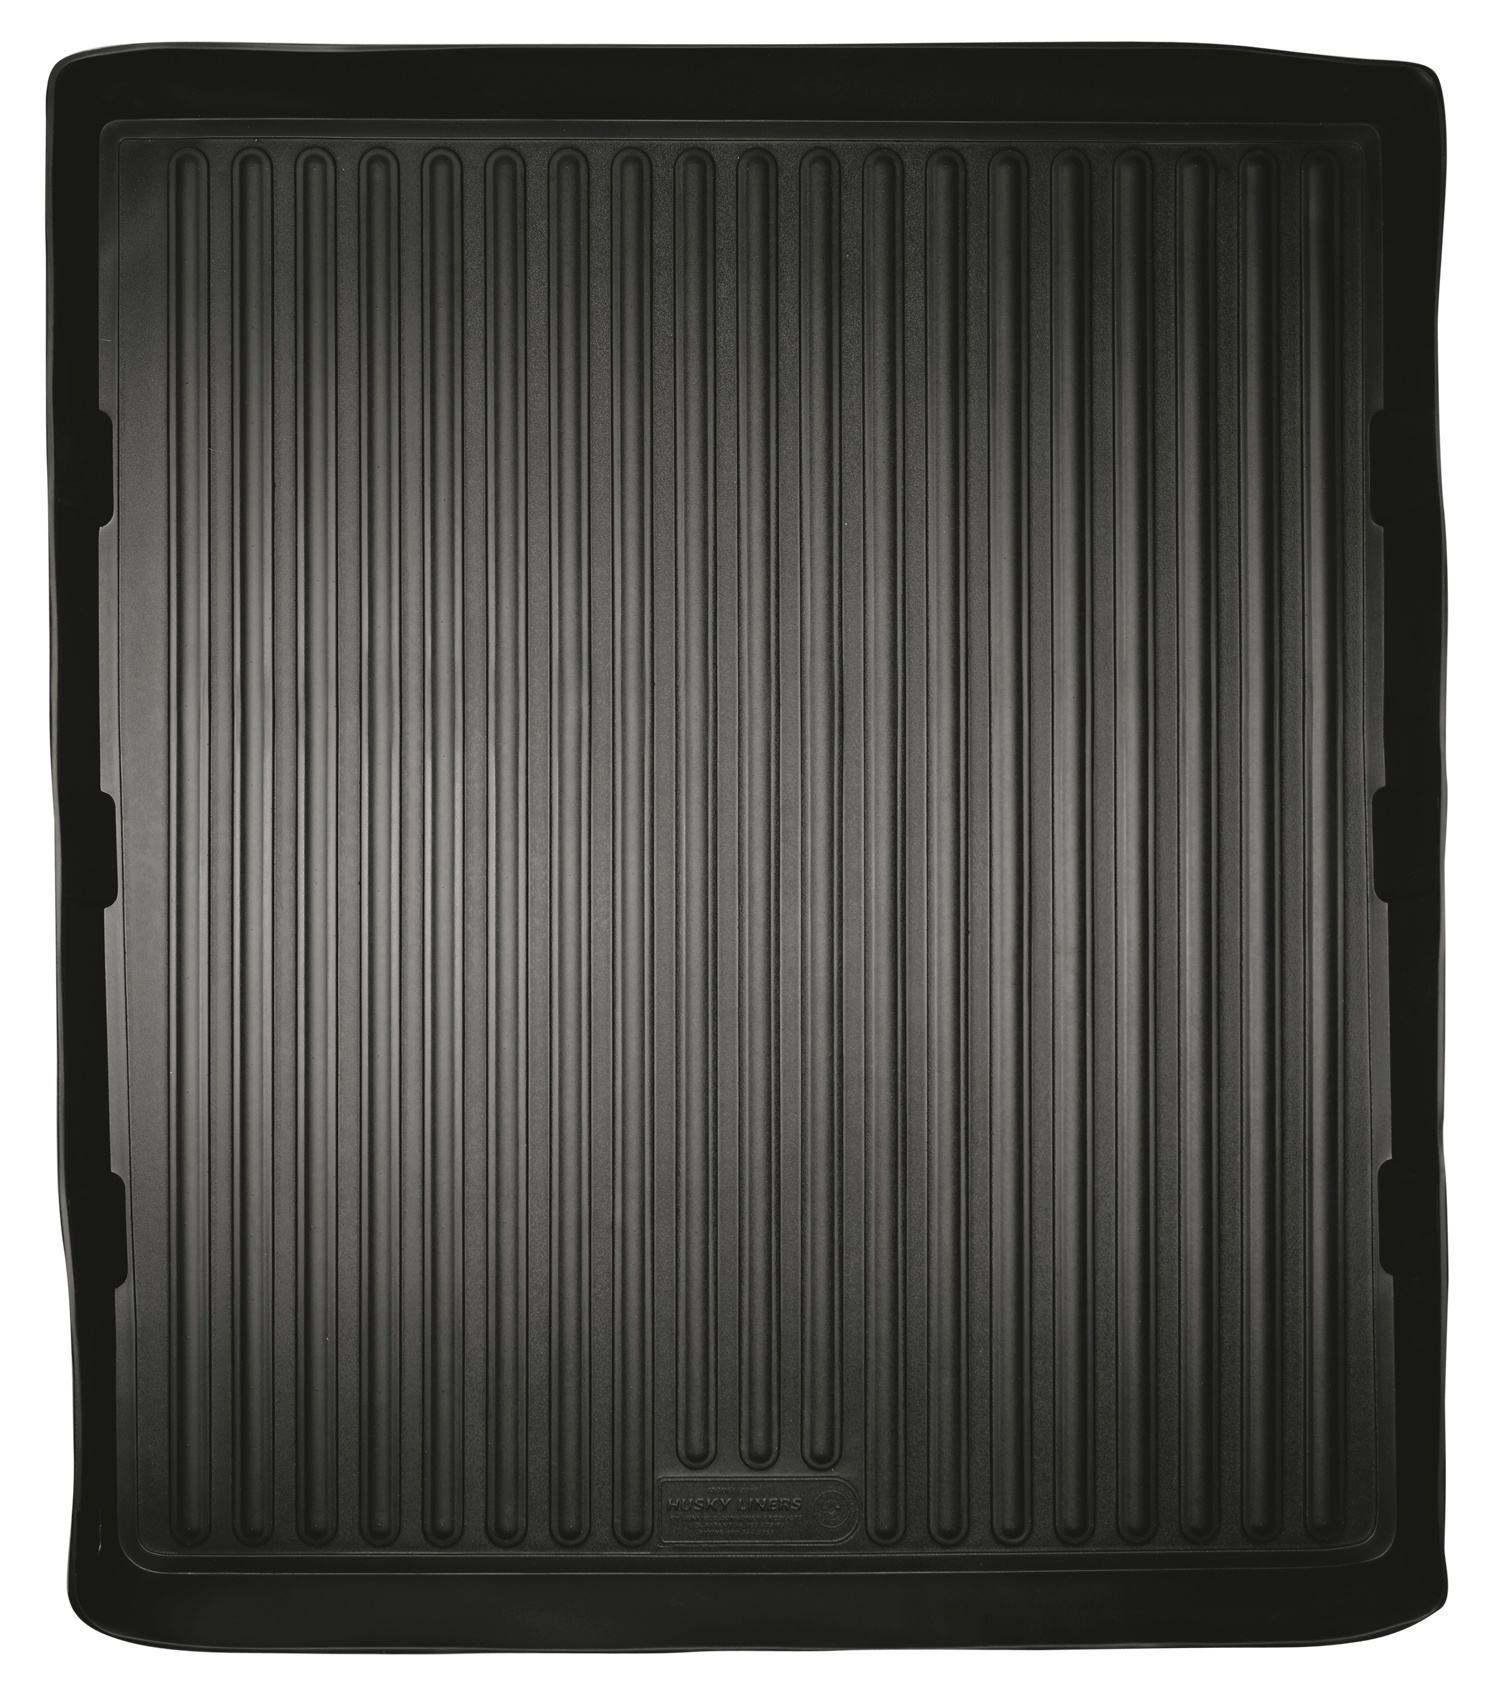 2009-2018 Ford Flex Husky WeatherBeater Floor Mats